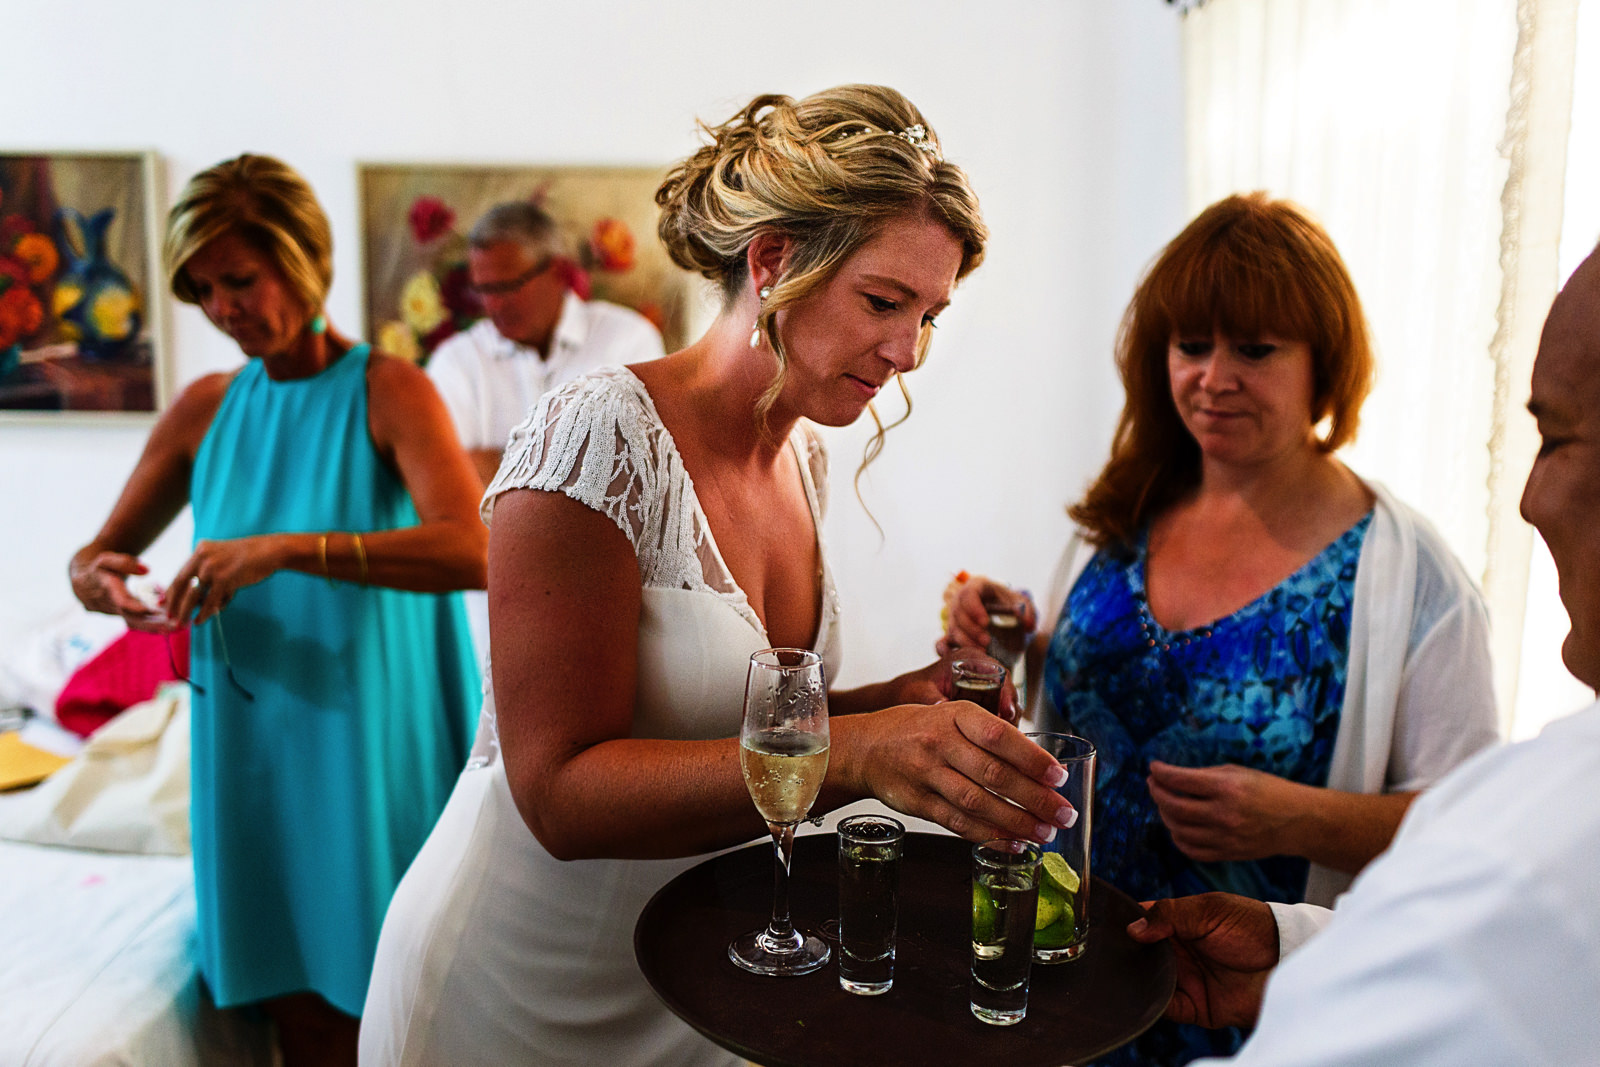 Bride and mother-in-law about to have a shot of tequila before the wedding ceremony